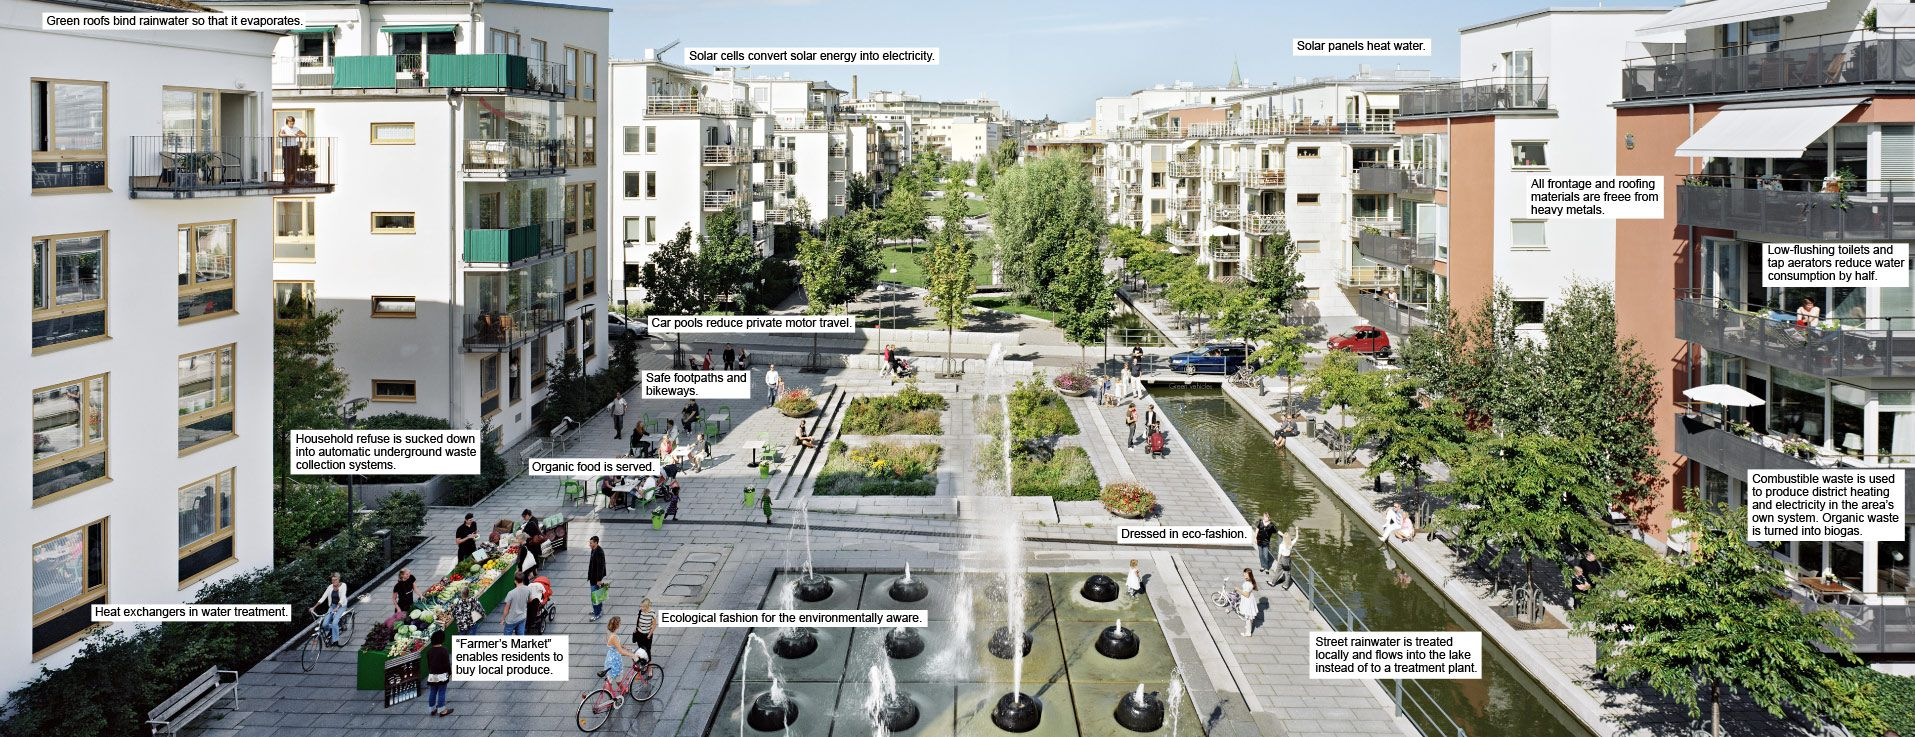 eco city projects in stockholm libre Article by brooklyn williams we take a look at eco friendly cities around   environmental policies are prioritized in stockholm, and as such the.